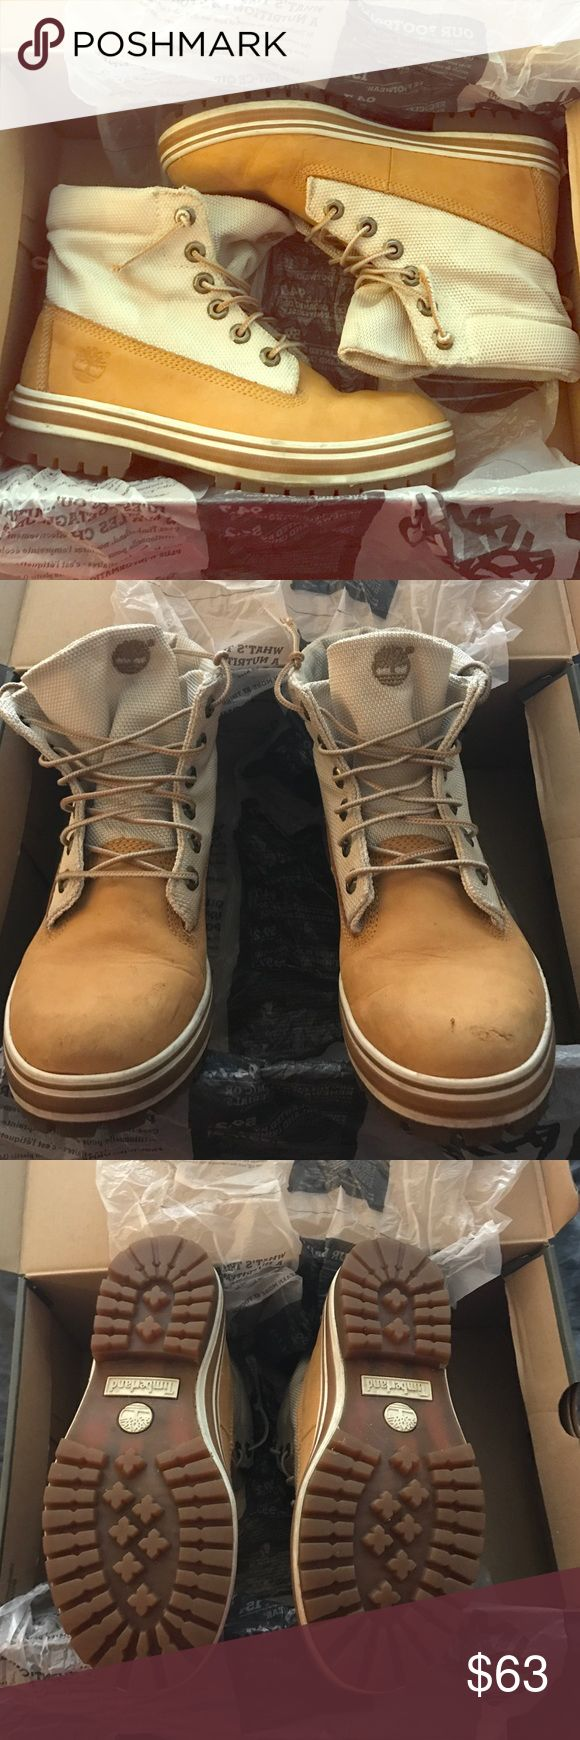 Size 6 Timberland boots! GREAT DEAL Size 6 Ladies!! Timberland boots! I've been hanging on to these but recently bought a new pair! I've kept them stored in the original box  They have a canvas top and original leather sole, I've kept them very clean there is no wear on the bottom at all! Timberland Shoes Winter & Rain Boots